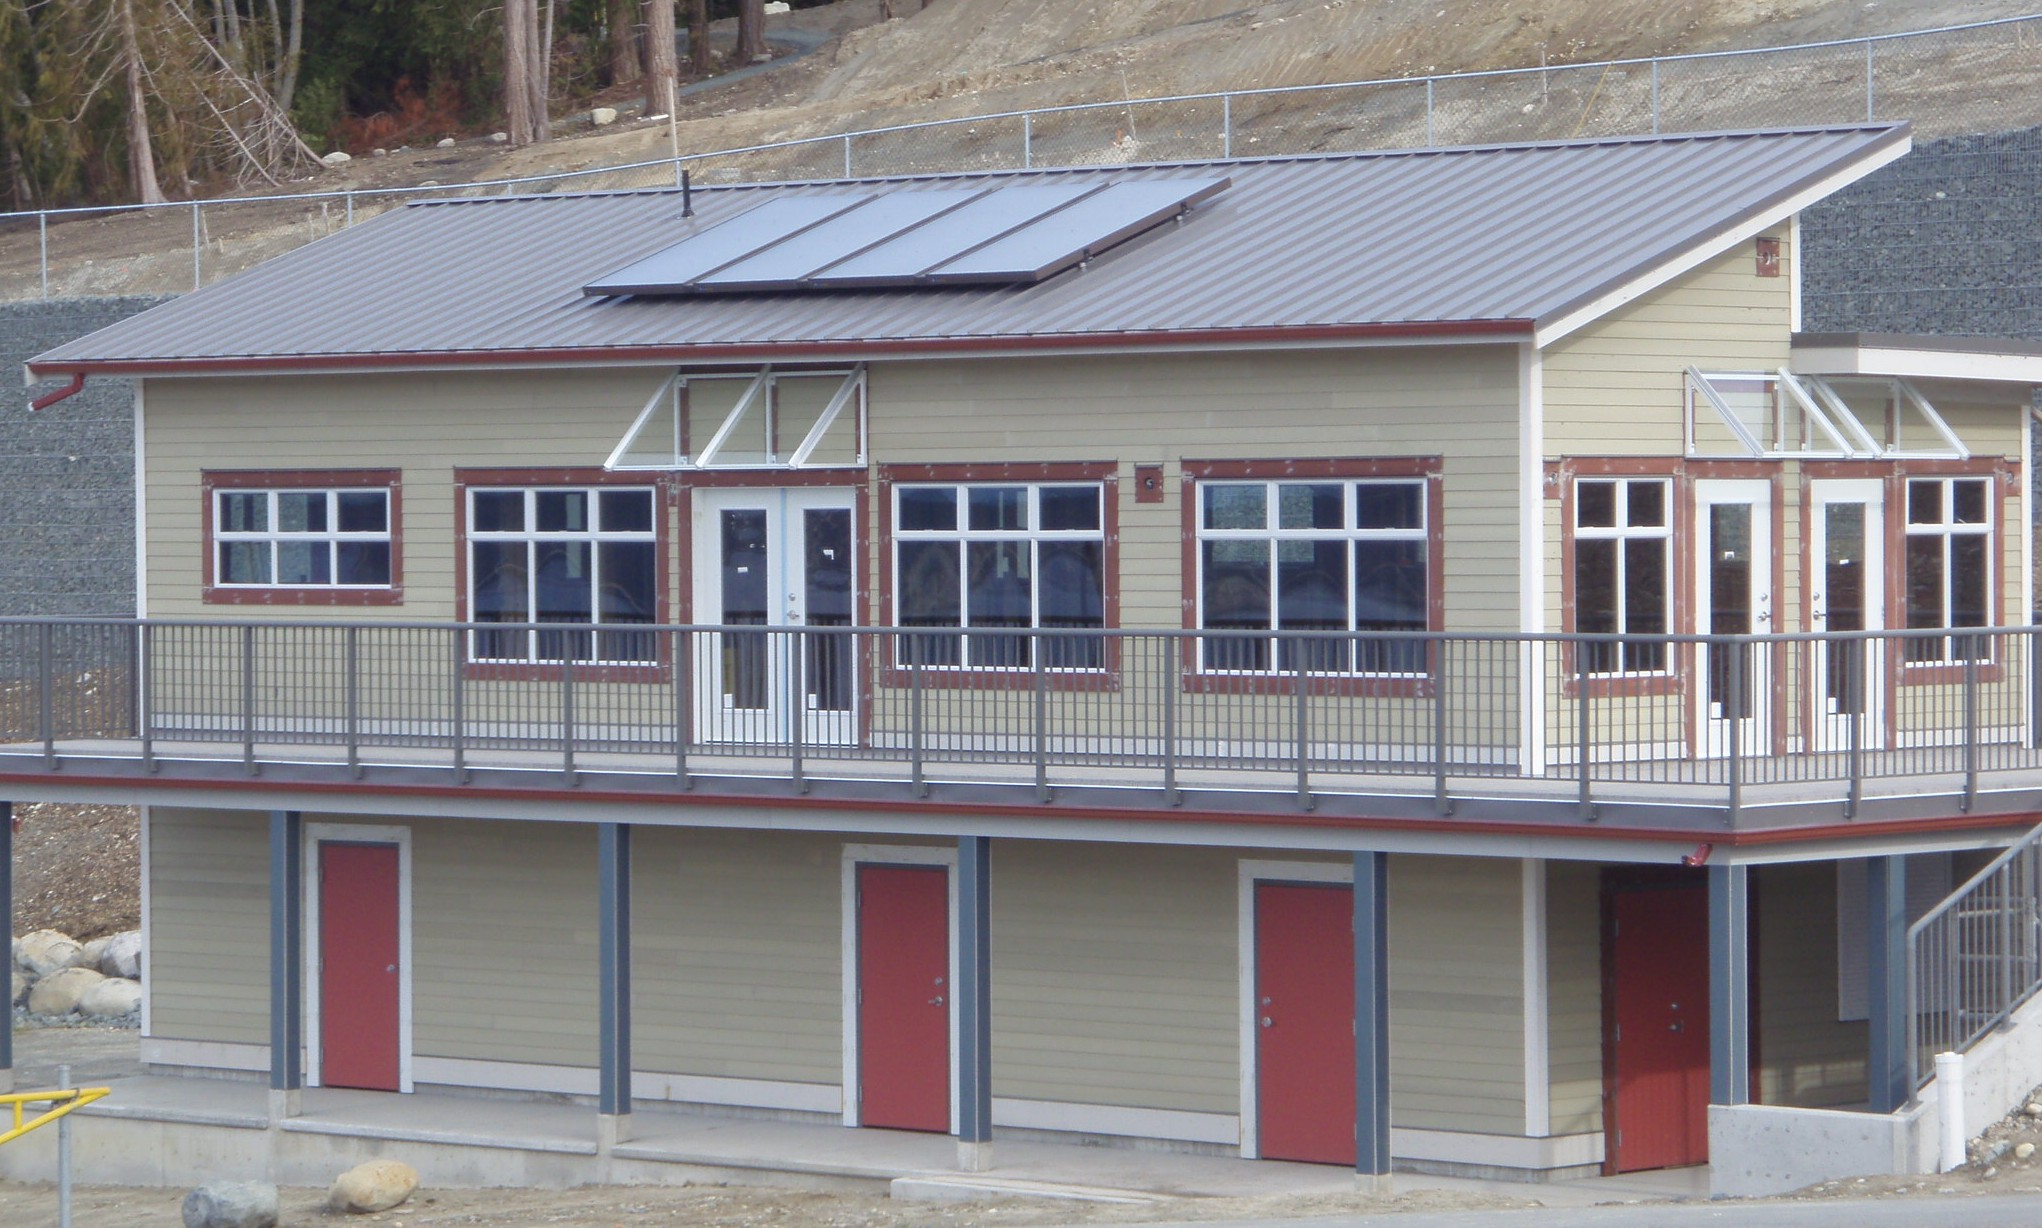 Solar Thermal Array for School Facility